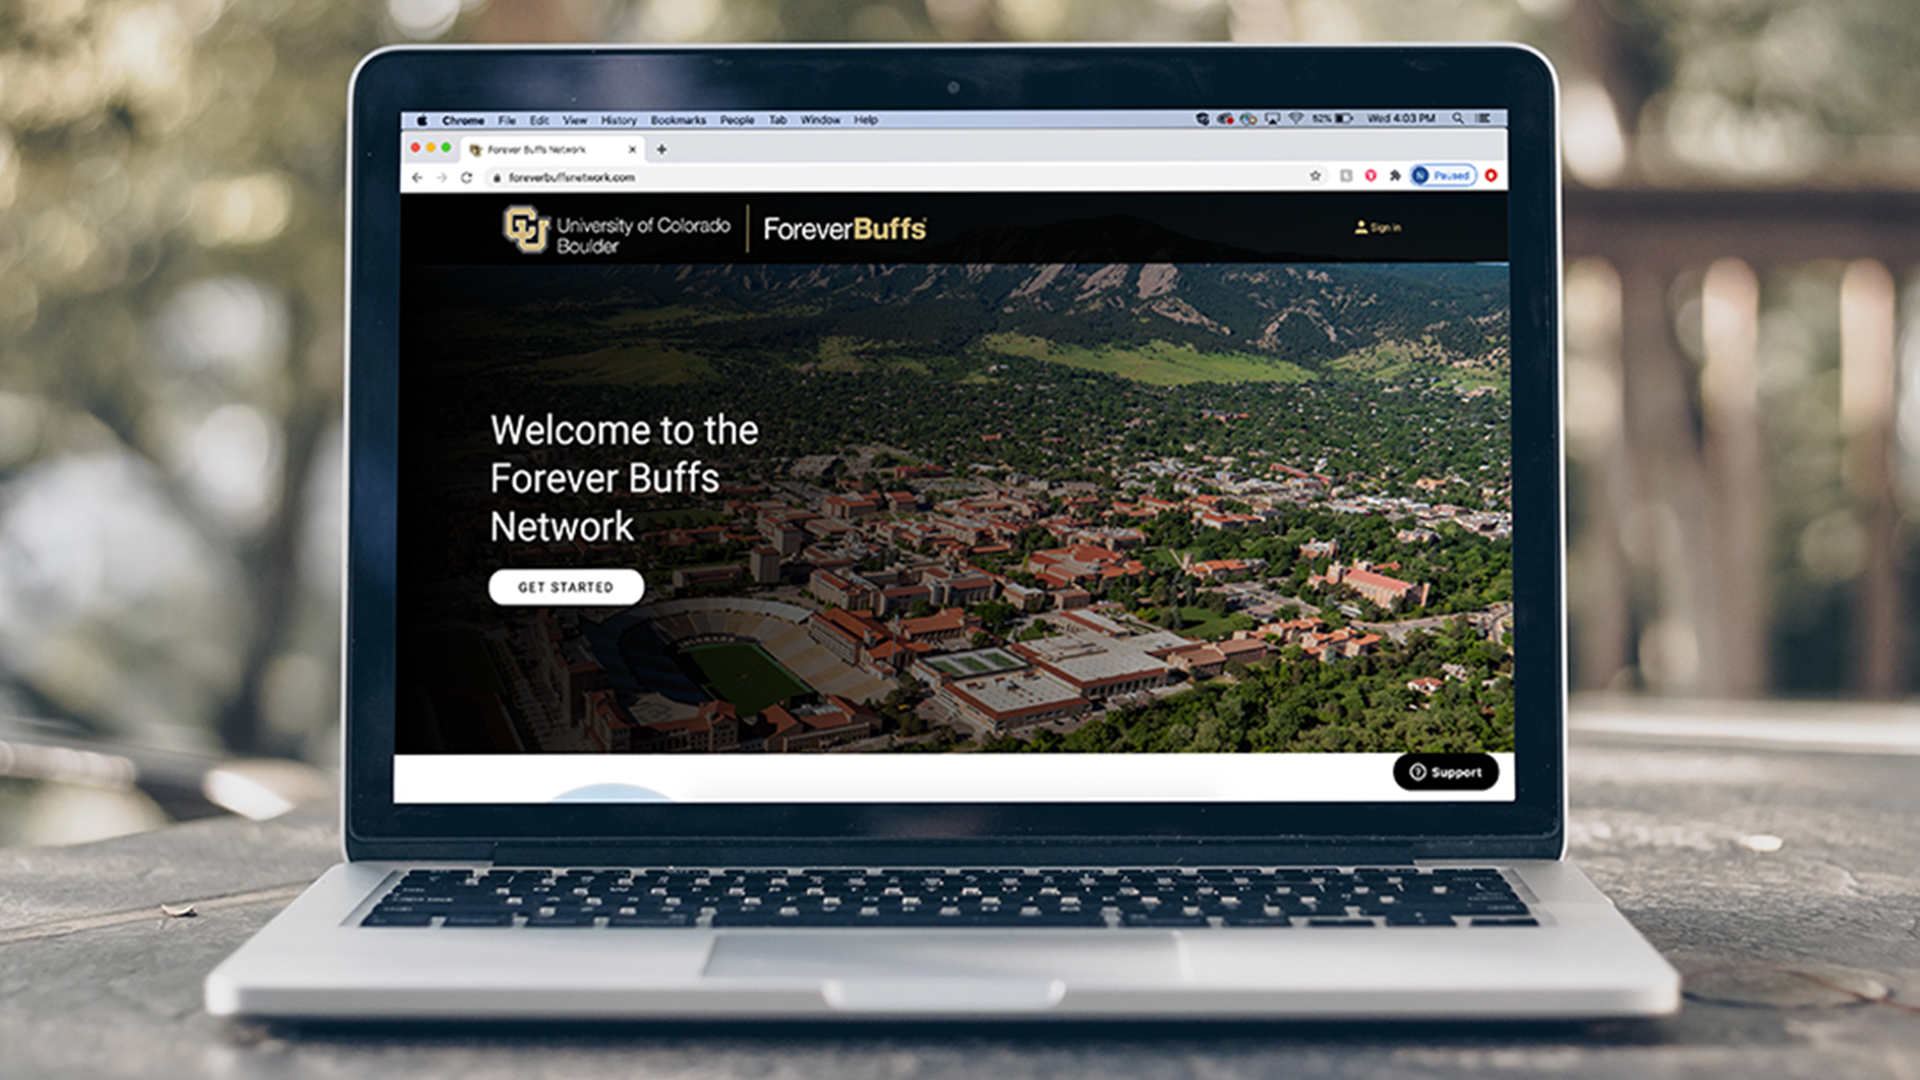 Forever Buffs Network homepage on a computer screen